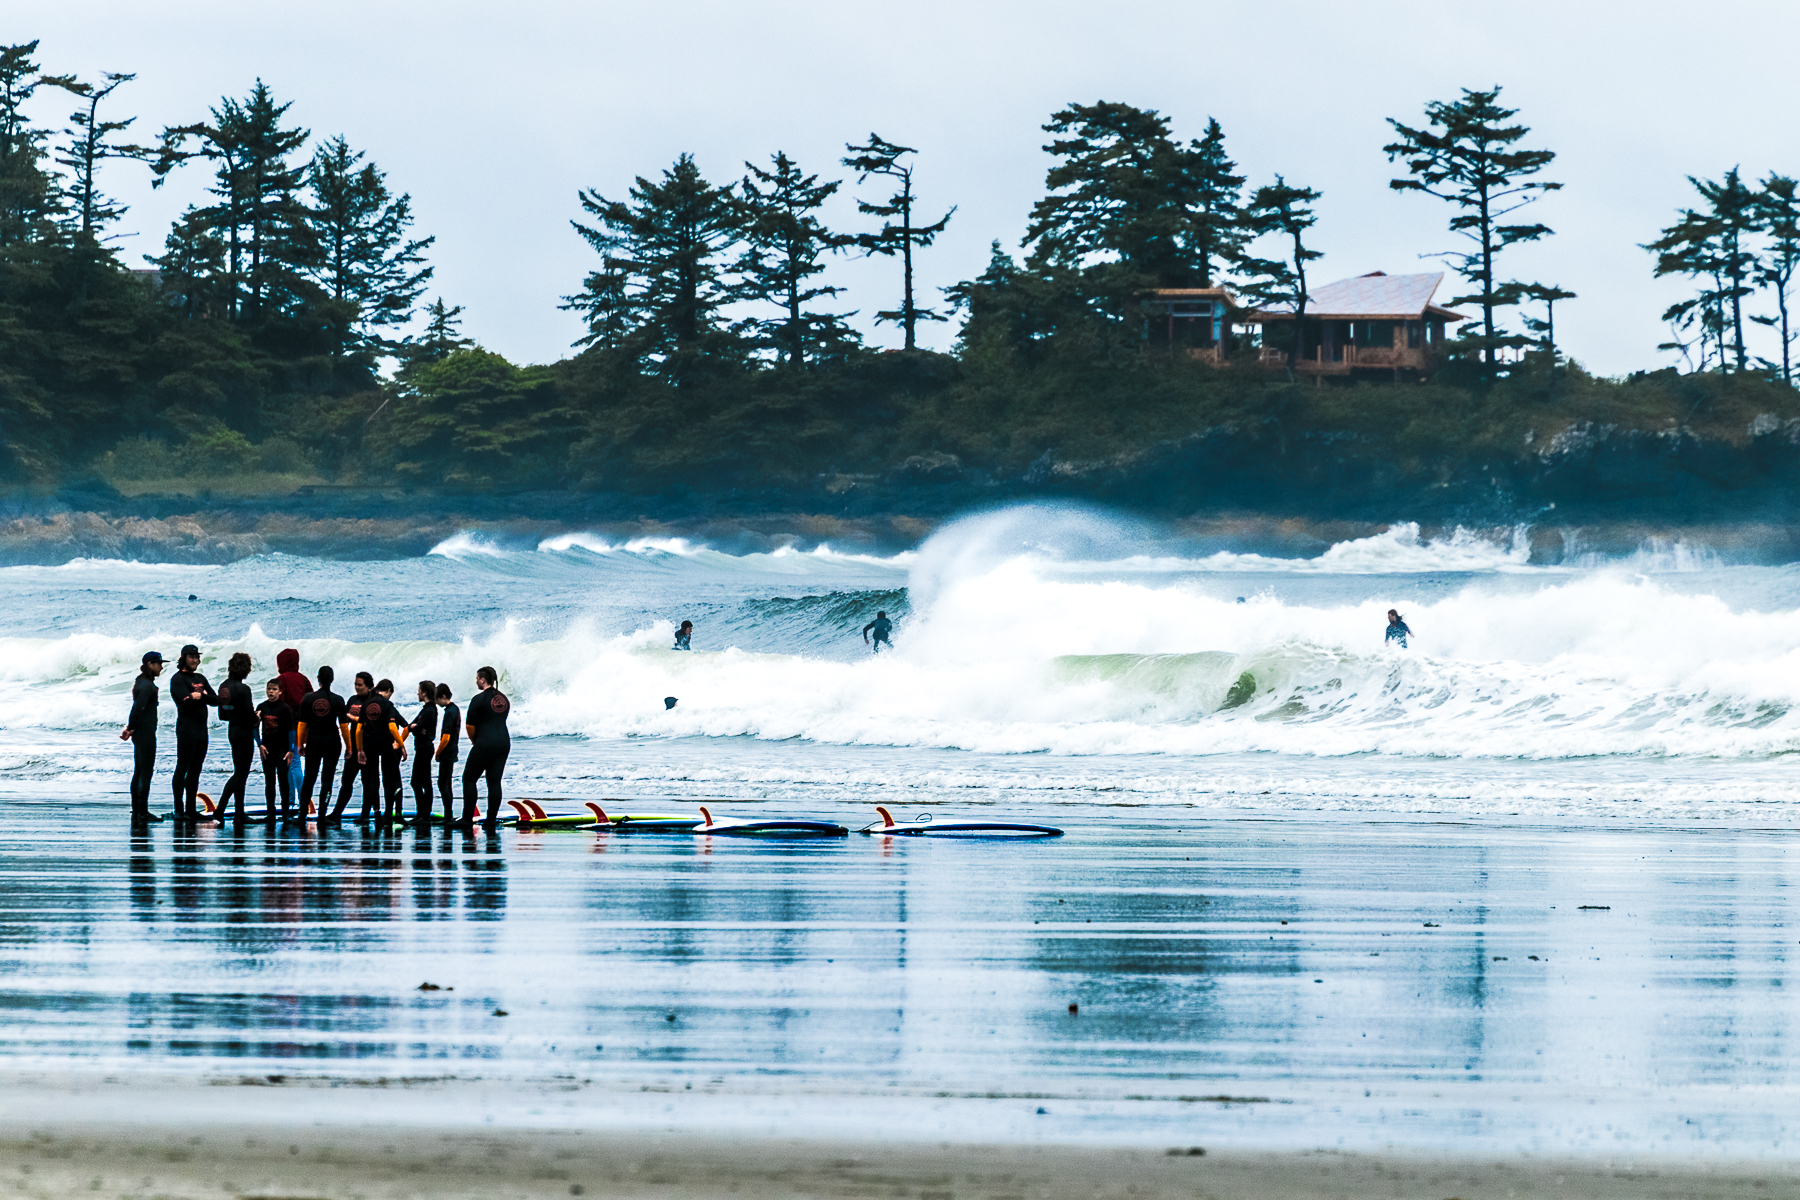 tofino_surf_photography_Barrels_Beginner_Waves_Vancouver_Isand_2018.jpg